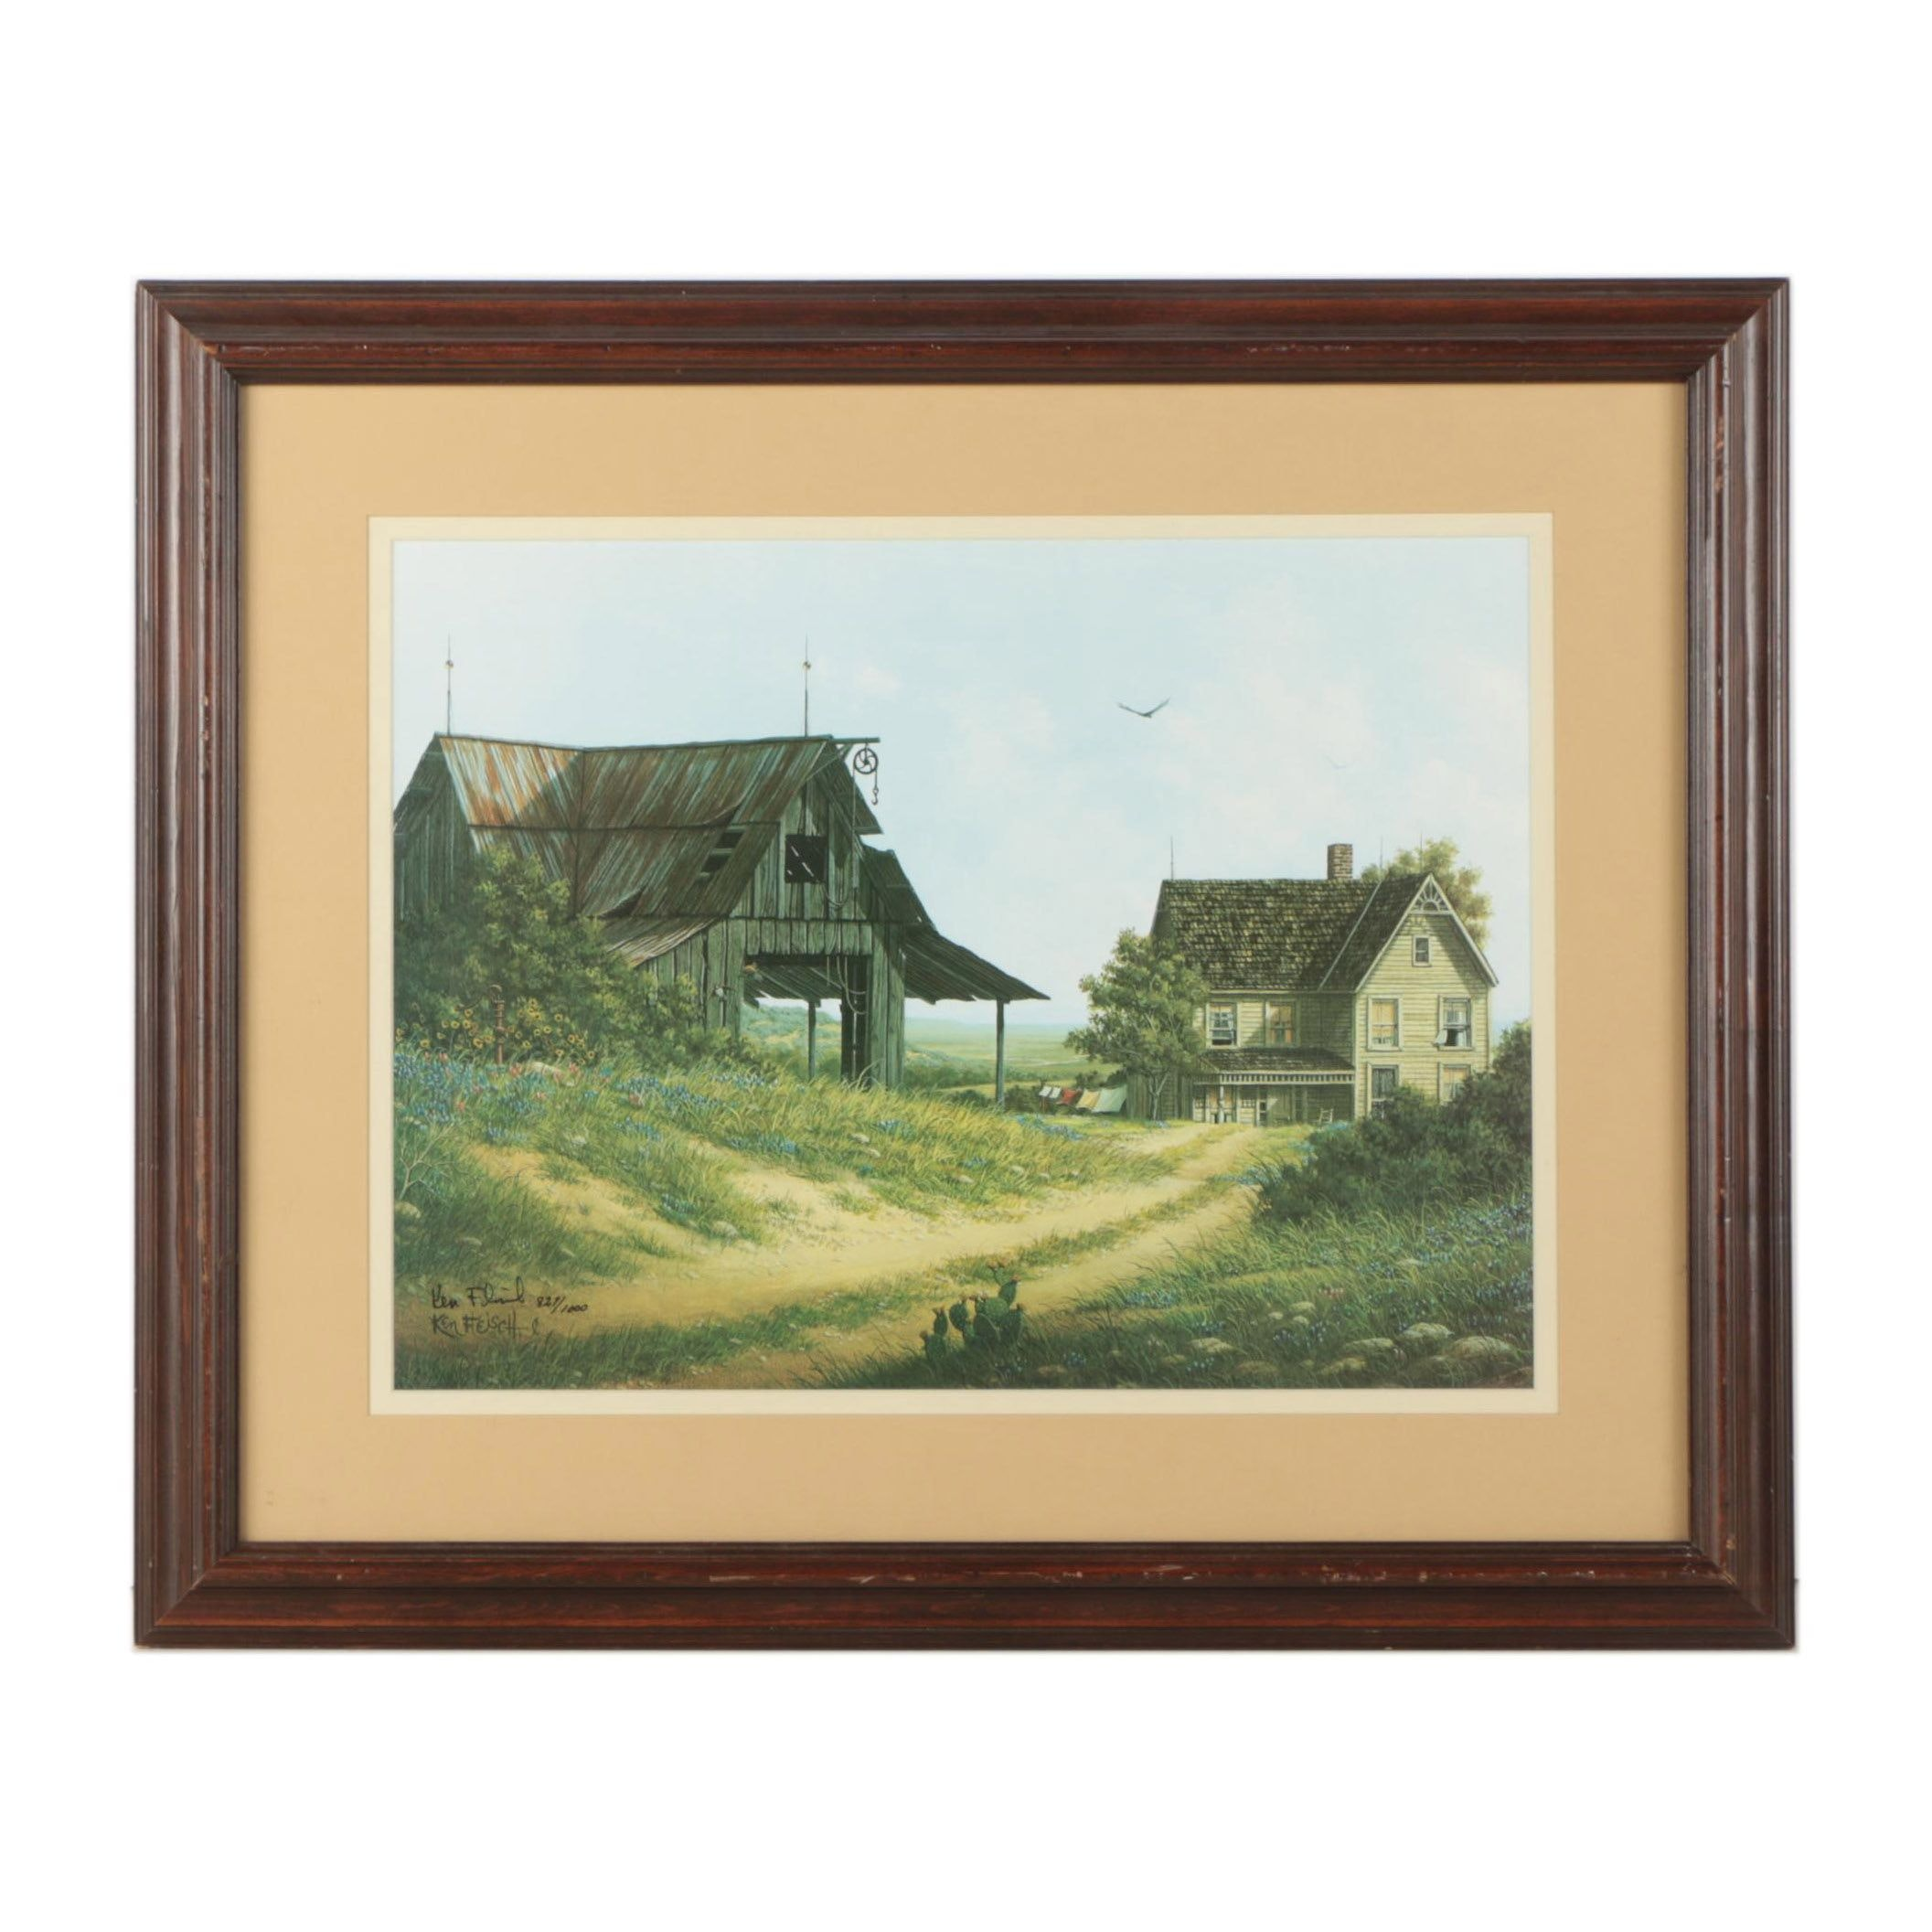 "Ken Fleisch Limited Edition Offset Lithograph ""The Edge of Time"""